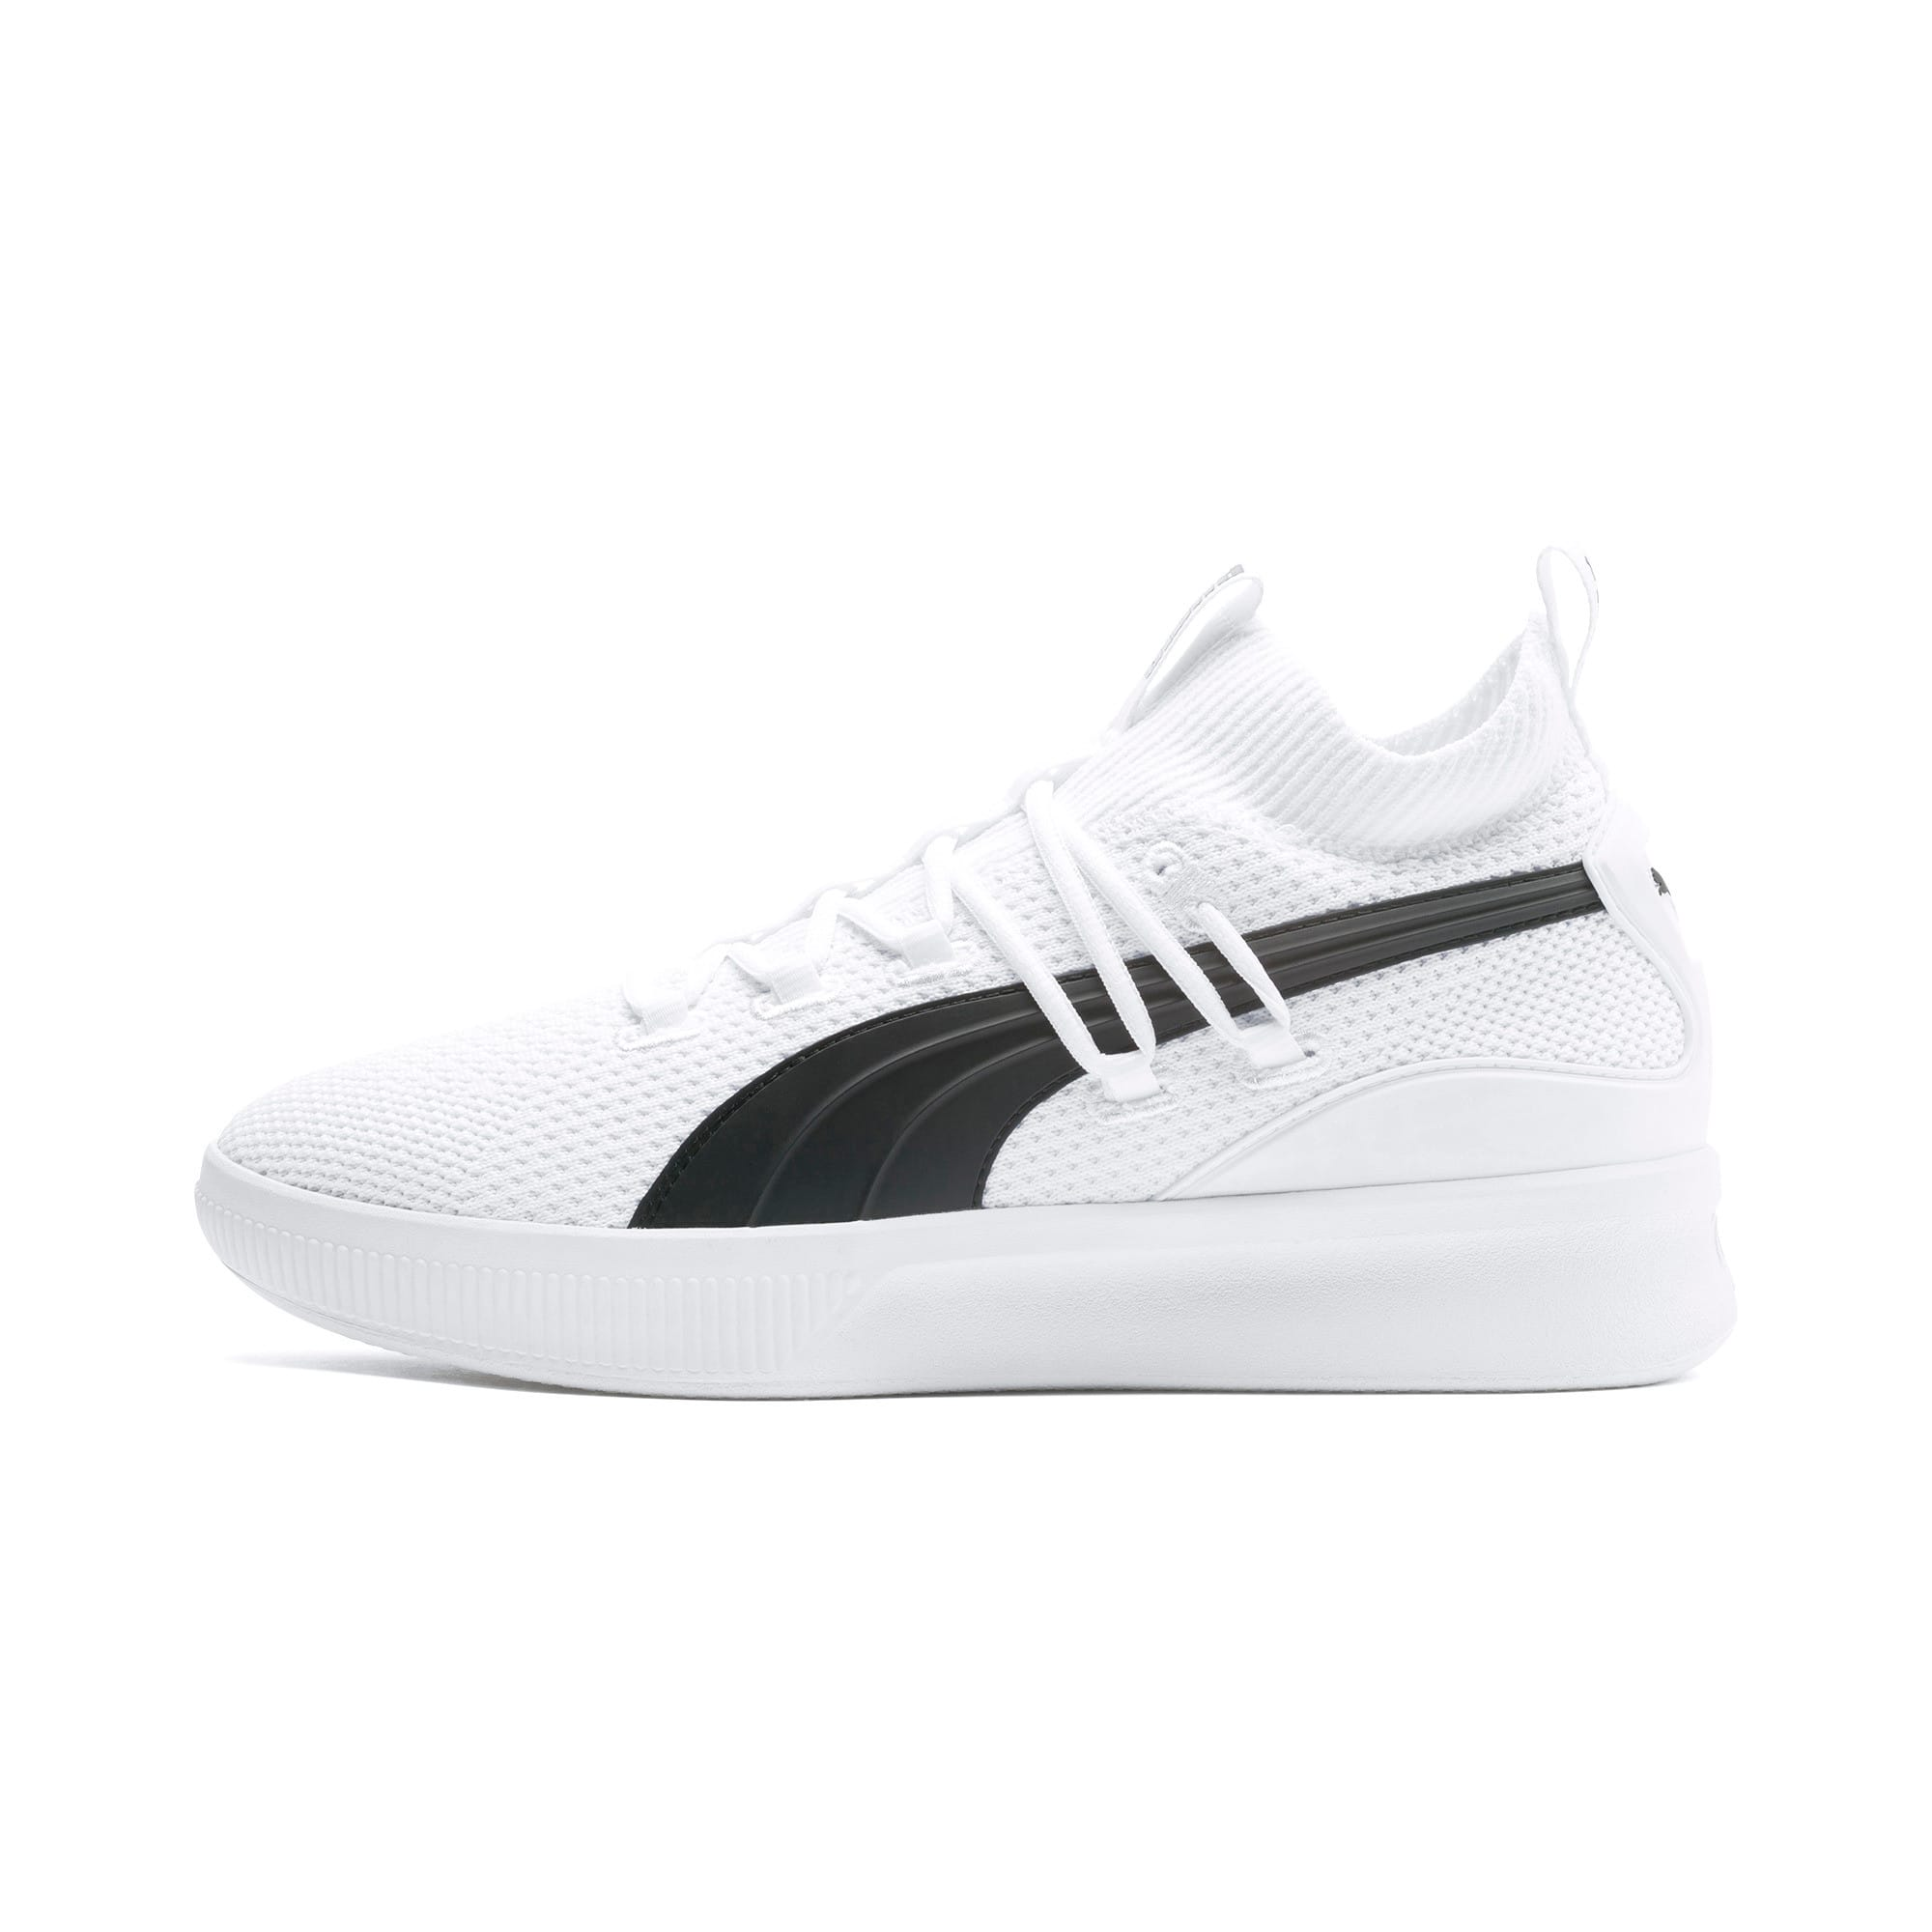 Thumbnail 1 of Clyde Court Core Basketball Shoes, Puma White, medium